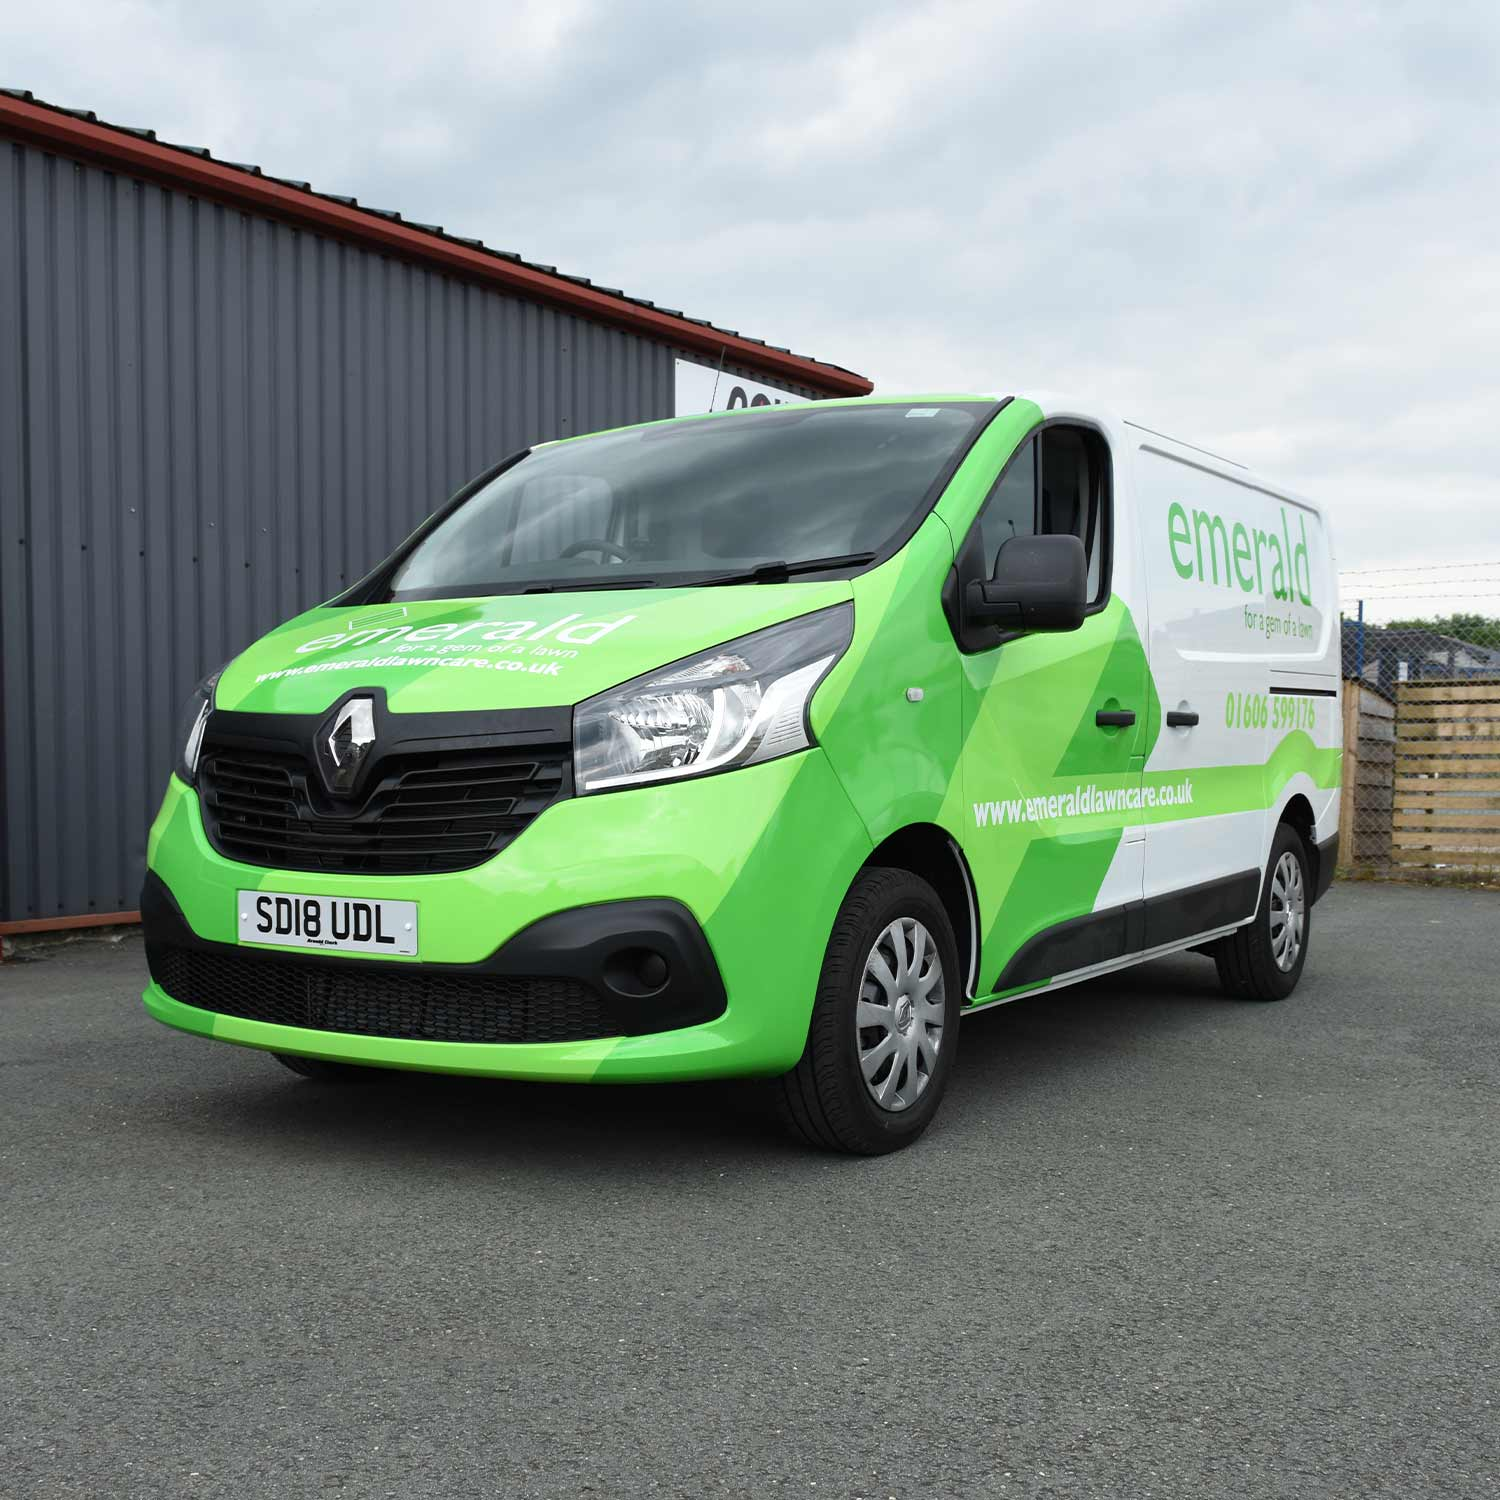 Emerald-Lawn-Care-Van Landscaping Vehicle Wrap